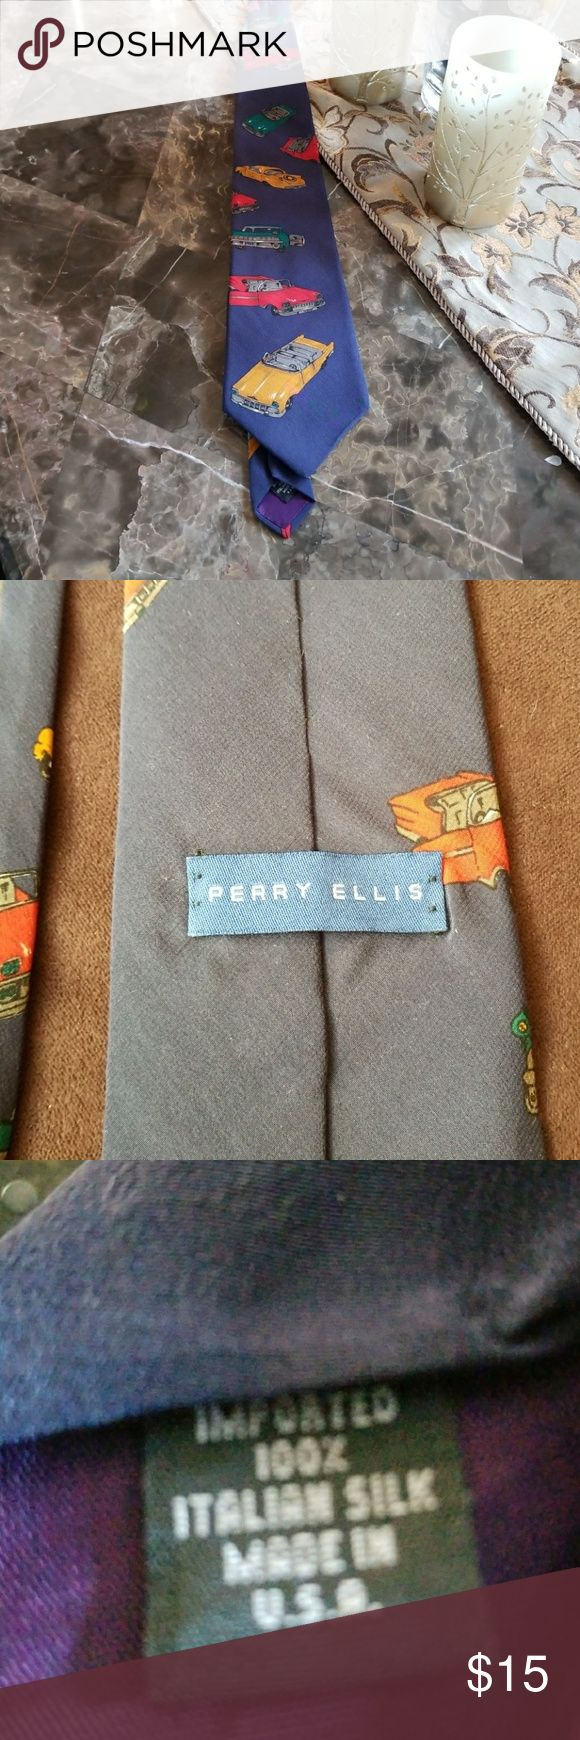 """Men's tie Perry Ellis  100% Italian Silk, pre loved men's blue tie with different  colored cars. When folded in half 29"""" long. If you like unique ties and not look like everybody else, this is the tie for you......A REAL CONVERSATION PIECE. Perry Ellis Other"""